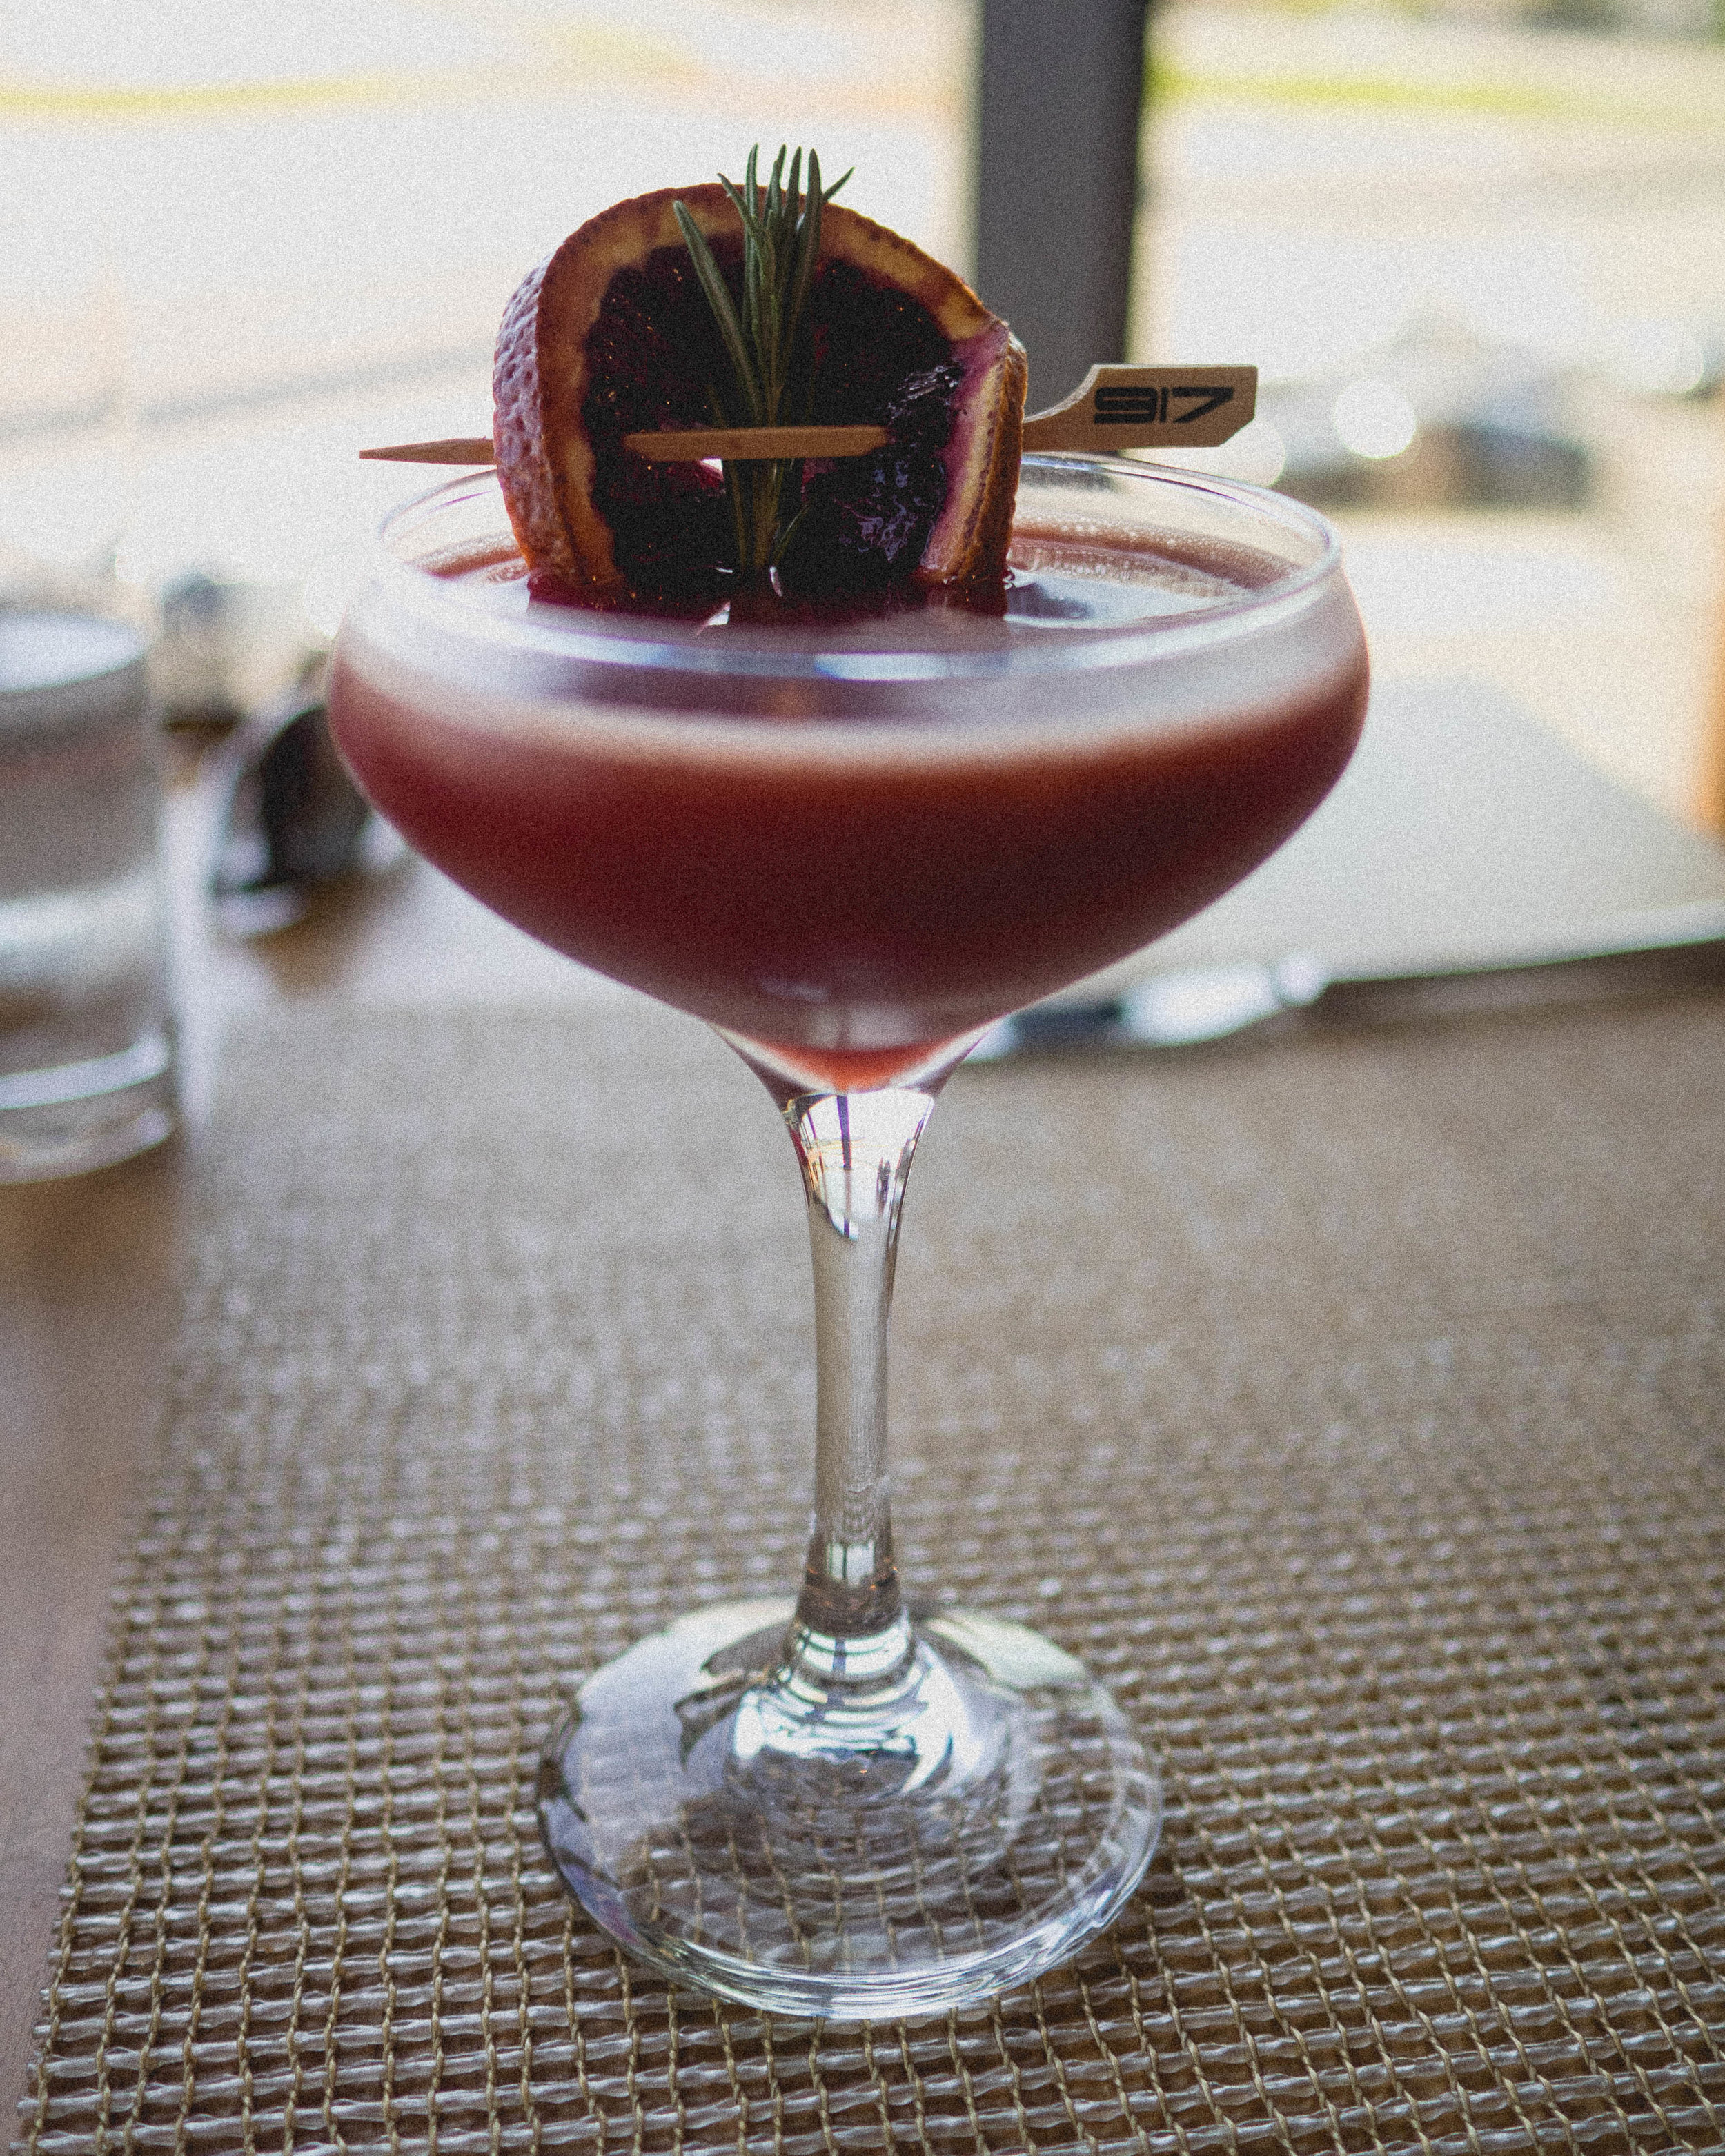 porsche travel experience - scotland  with macallan 12, blood orange, cassis liquor, rosemary, orange peel.